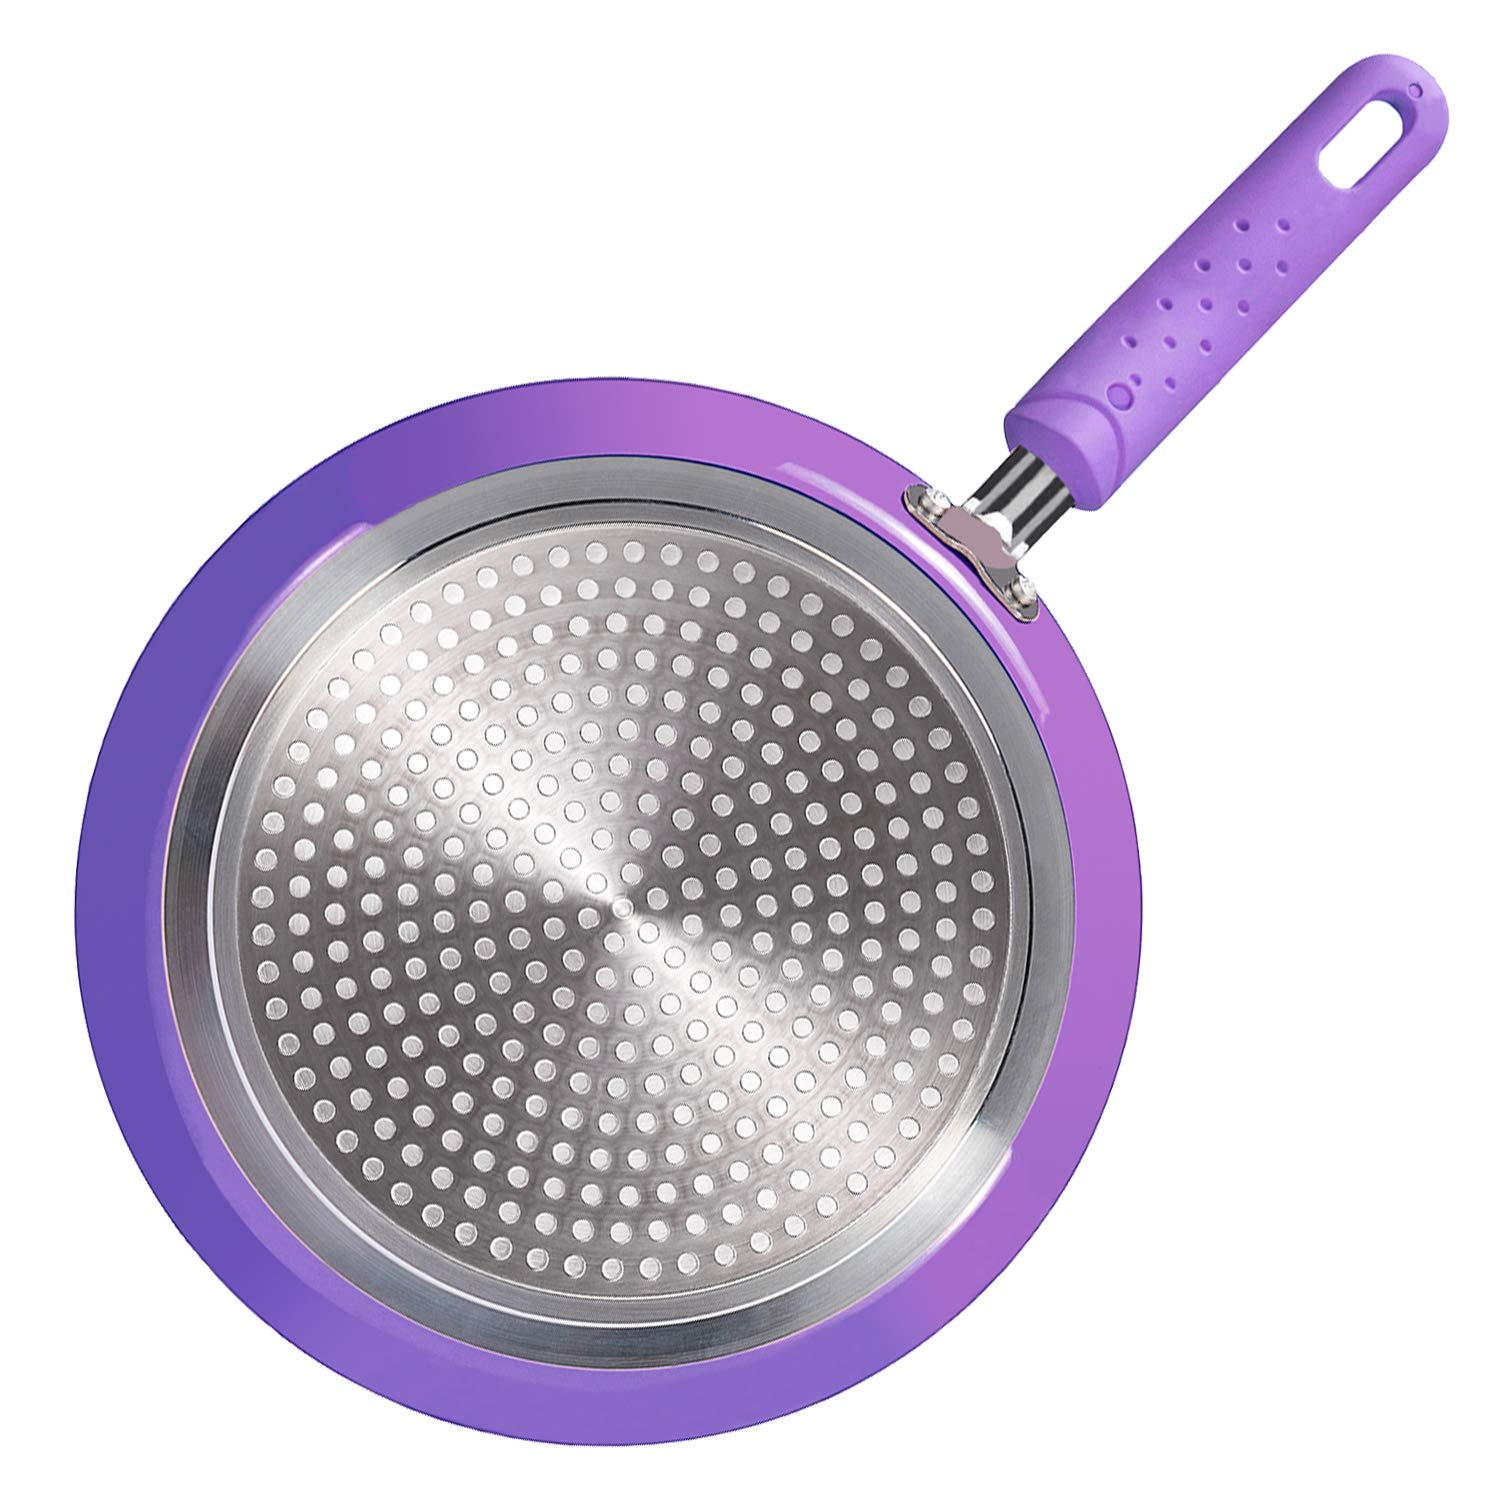 ROCKURWOK Nonstick Fry Pan Crepe Pan, Pancake Omelette Saute Skillet Griddle, Stainless Steel, 9.5-Inch, Purple